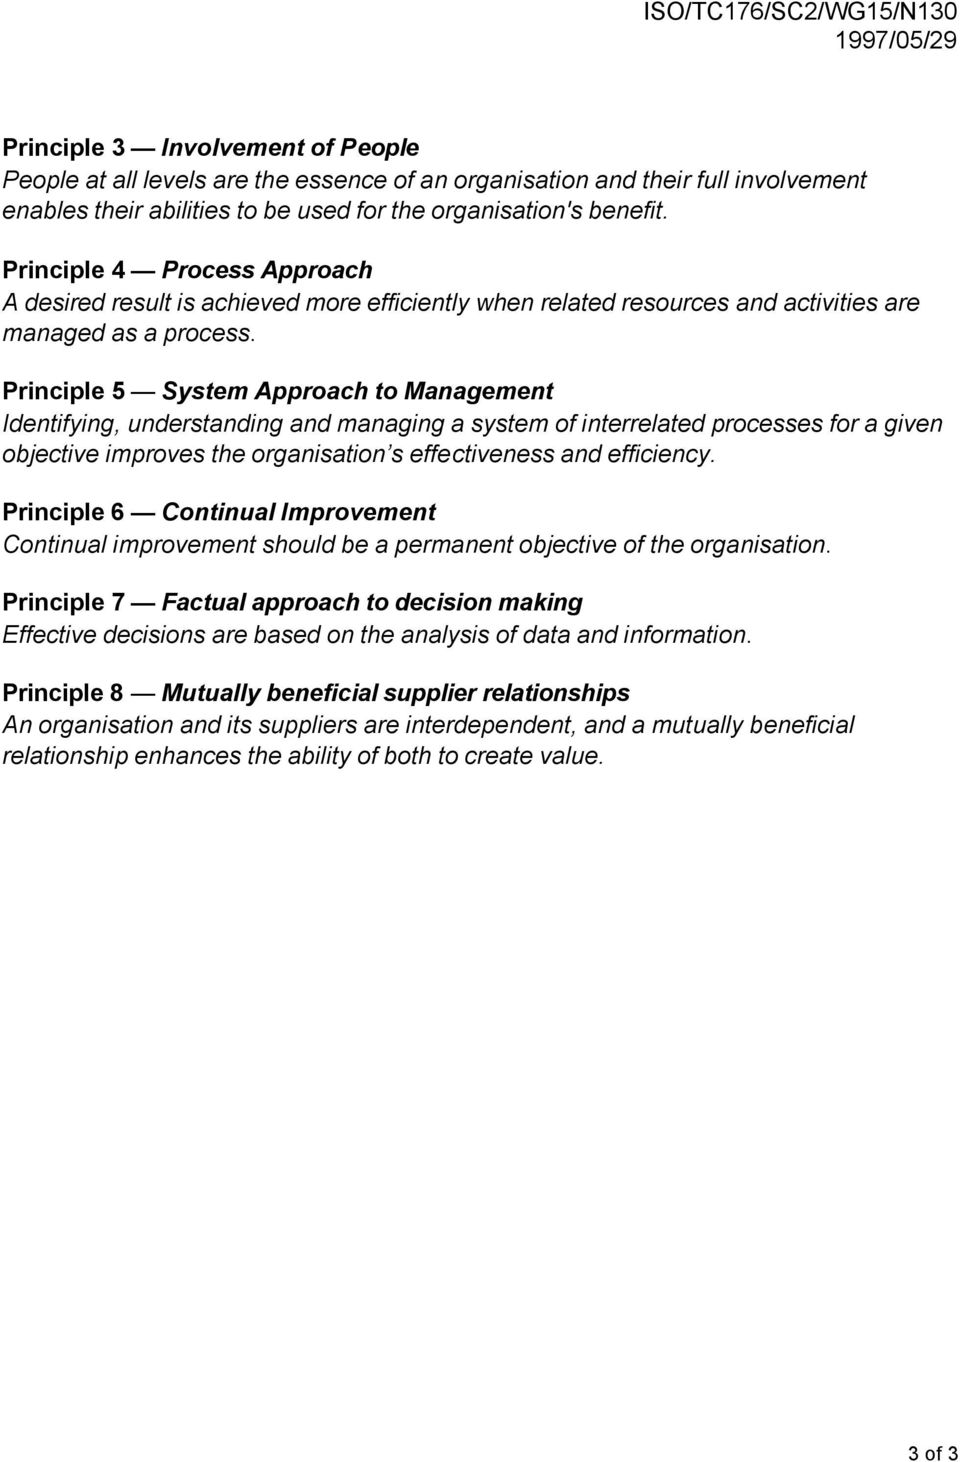 Principle 5 System Approach to Management Identifying, understanding and managing a system of interrelated processes for a given objective improves the organisation s effectiveness and efficiency.